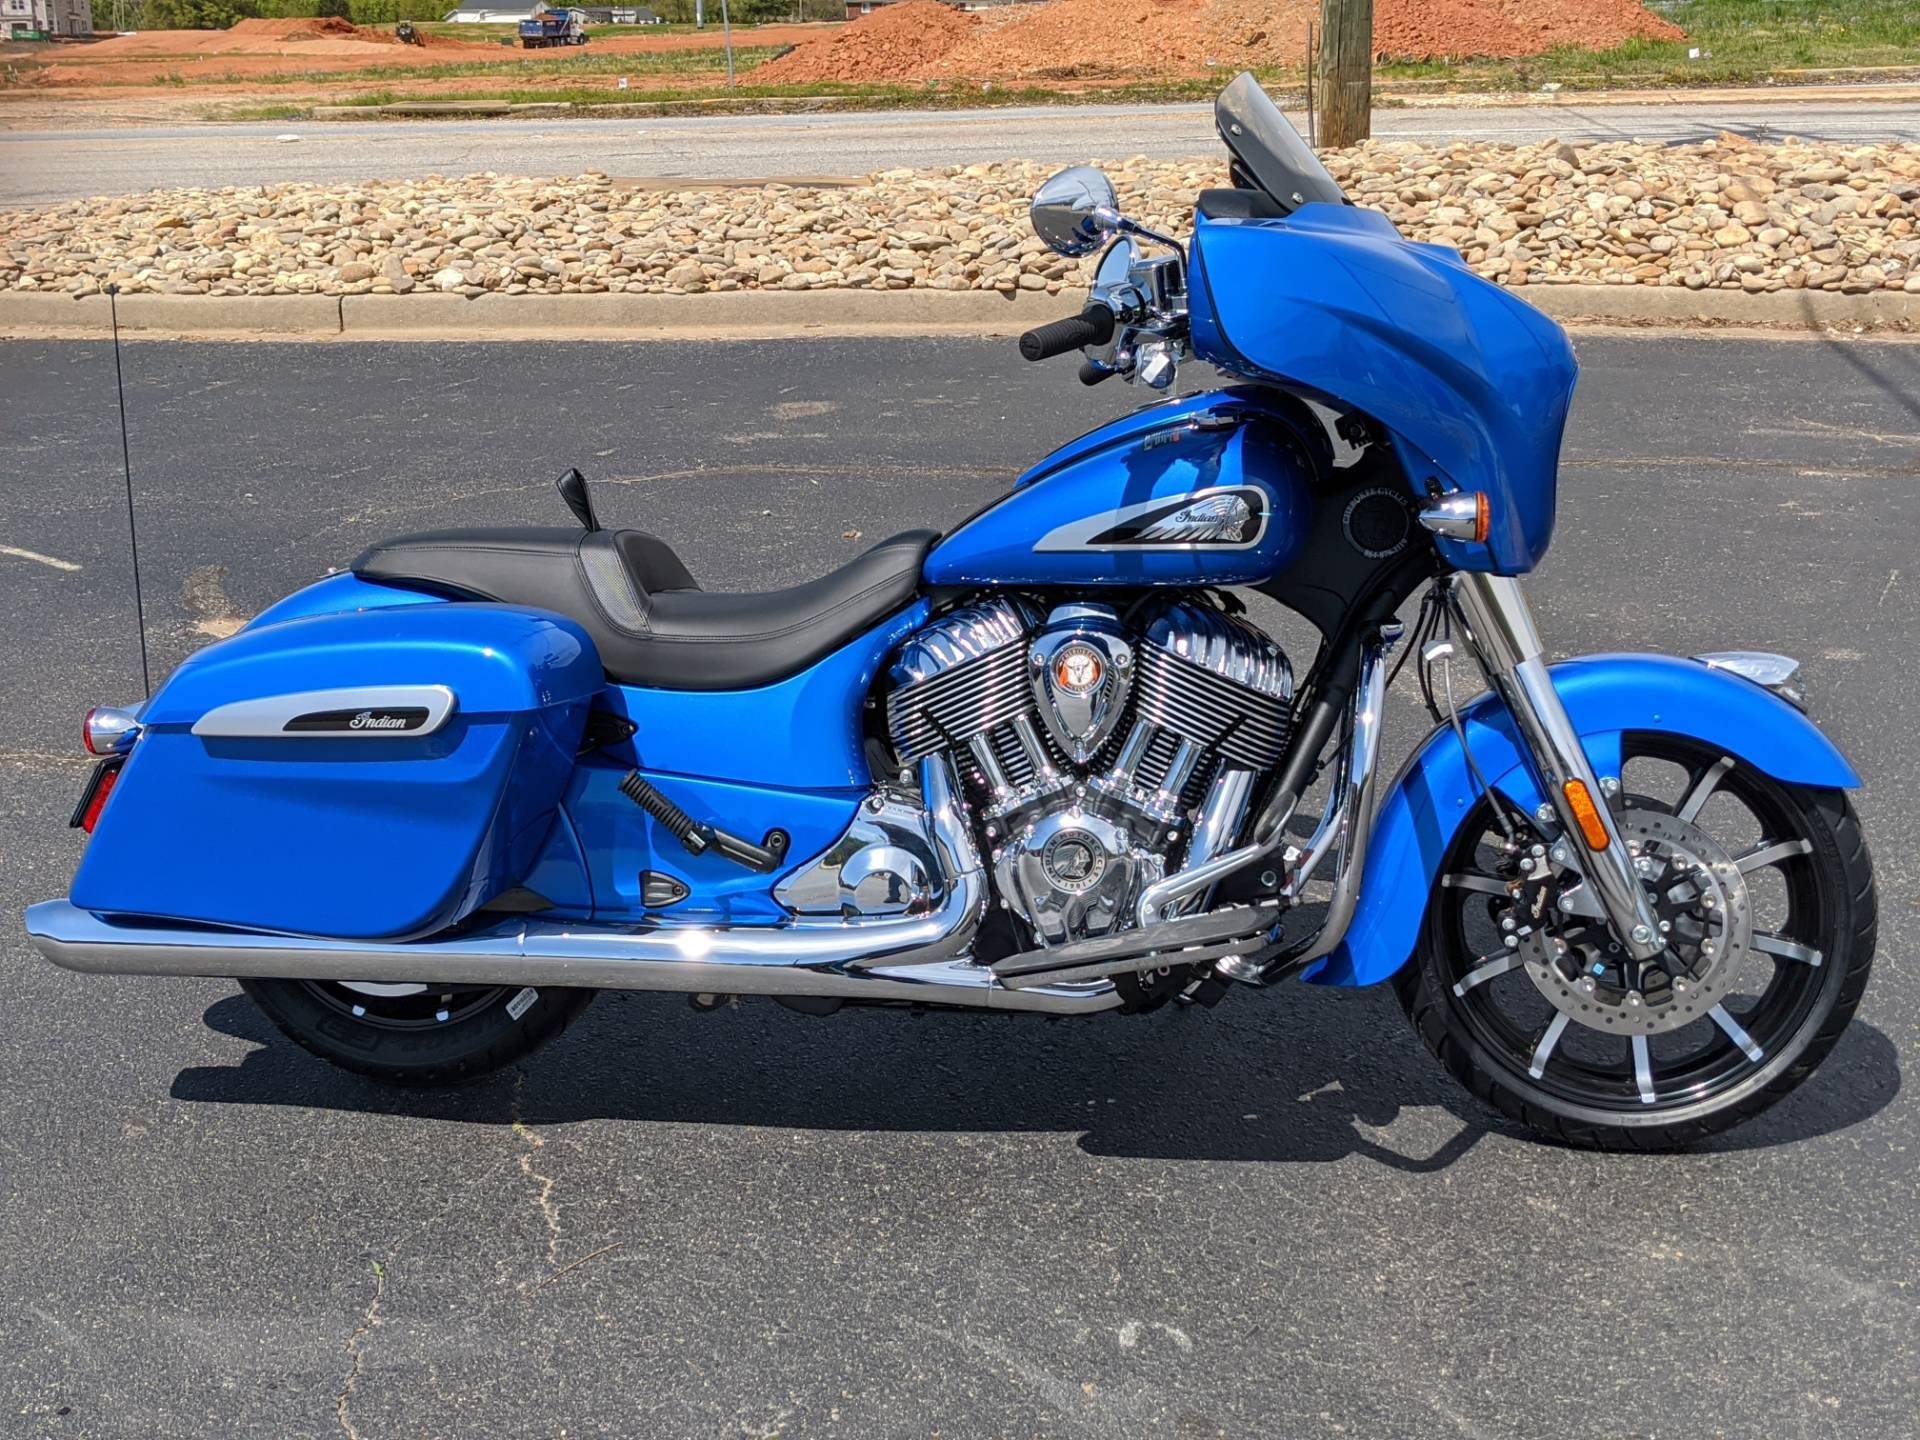 2020 Indian Chieftain Limited - Photo 1